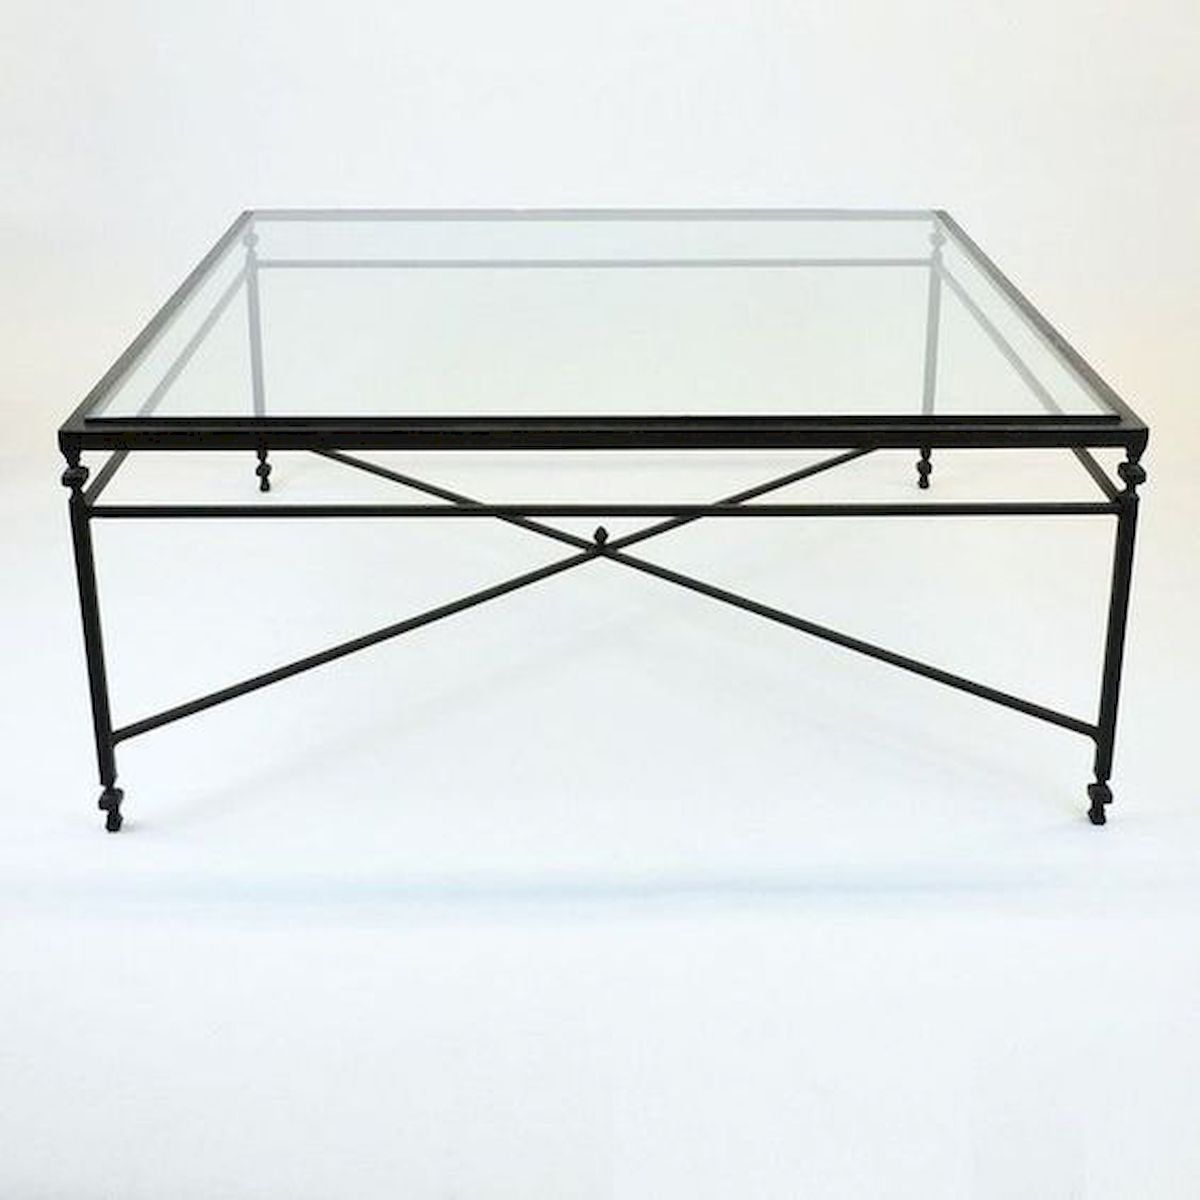 40 Awesome Modern Glass Coffee Table Design Ideas For Your Living Room Large Square Coffee Table Square Glass Coffee Table Coffee Table Square [ 1200 x 1200 Pixel ]